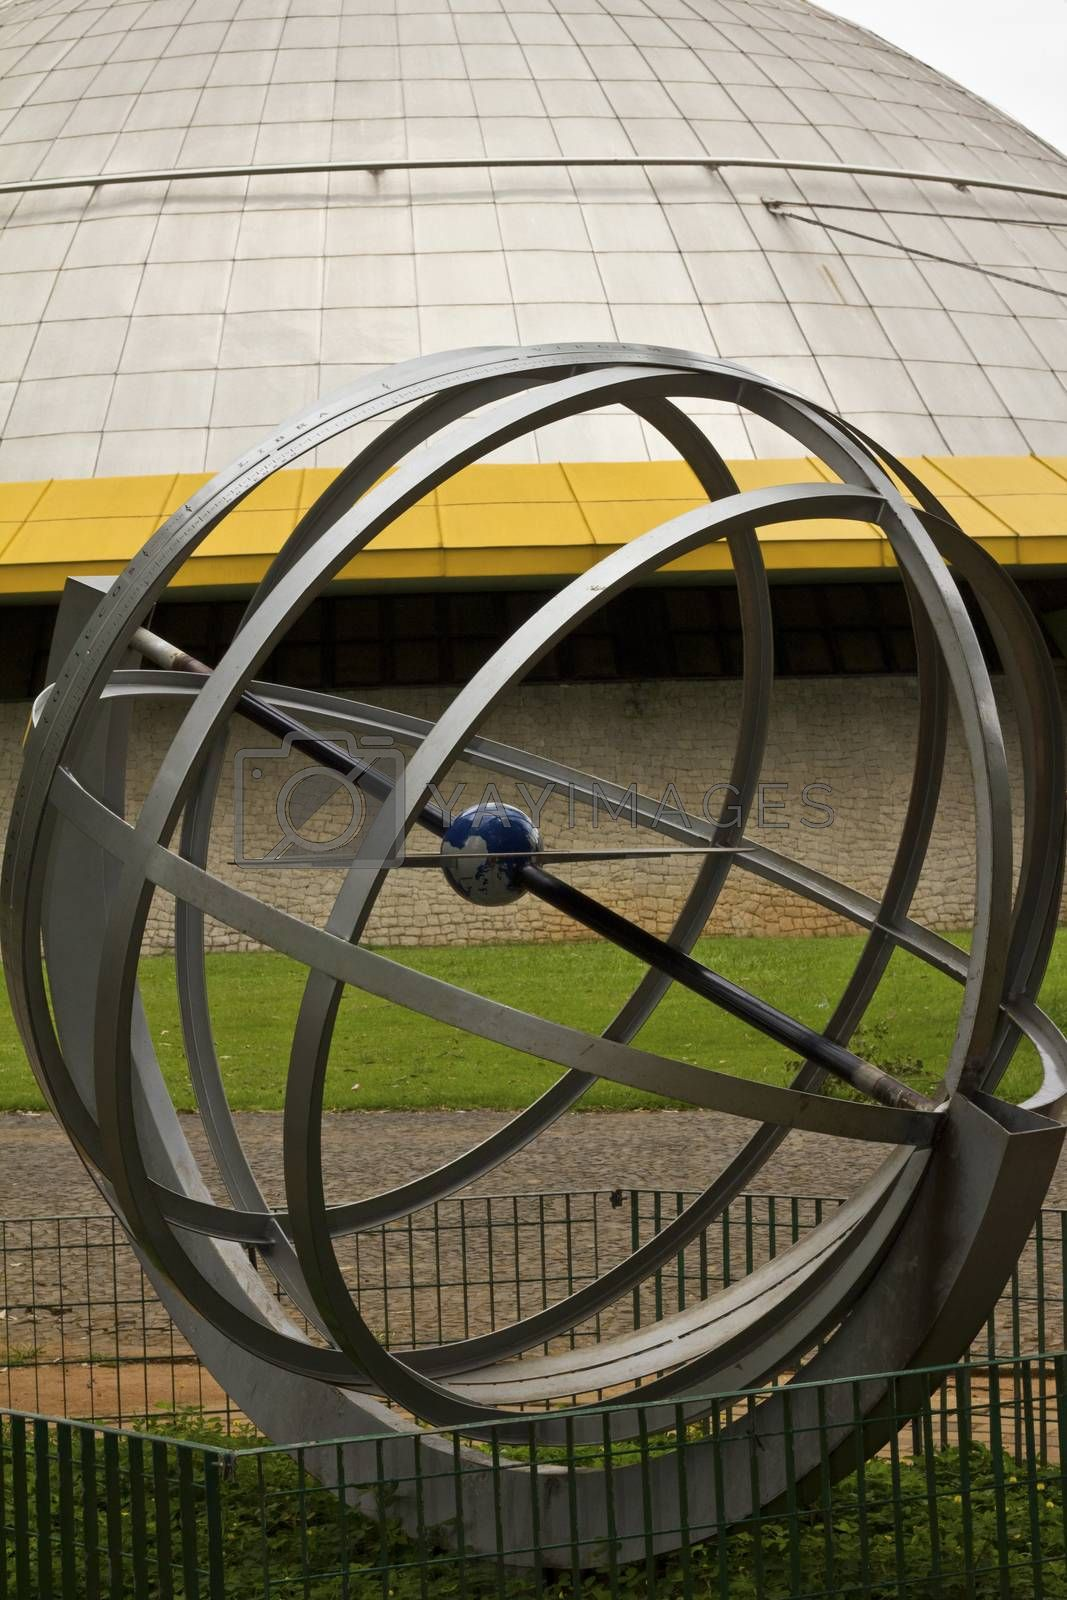 SAO PAULO, BRAZIL - FEBRUARY 01, 2015: A modern art monument in front of Planetarium in the Ibirapuera Park at Sao Paulo Brazil.